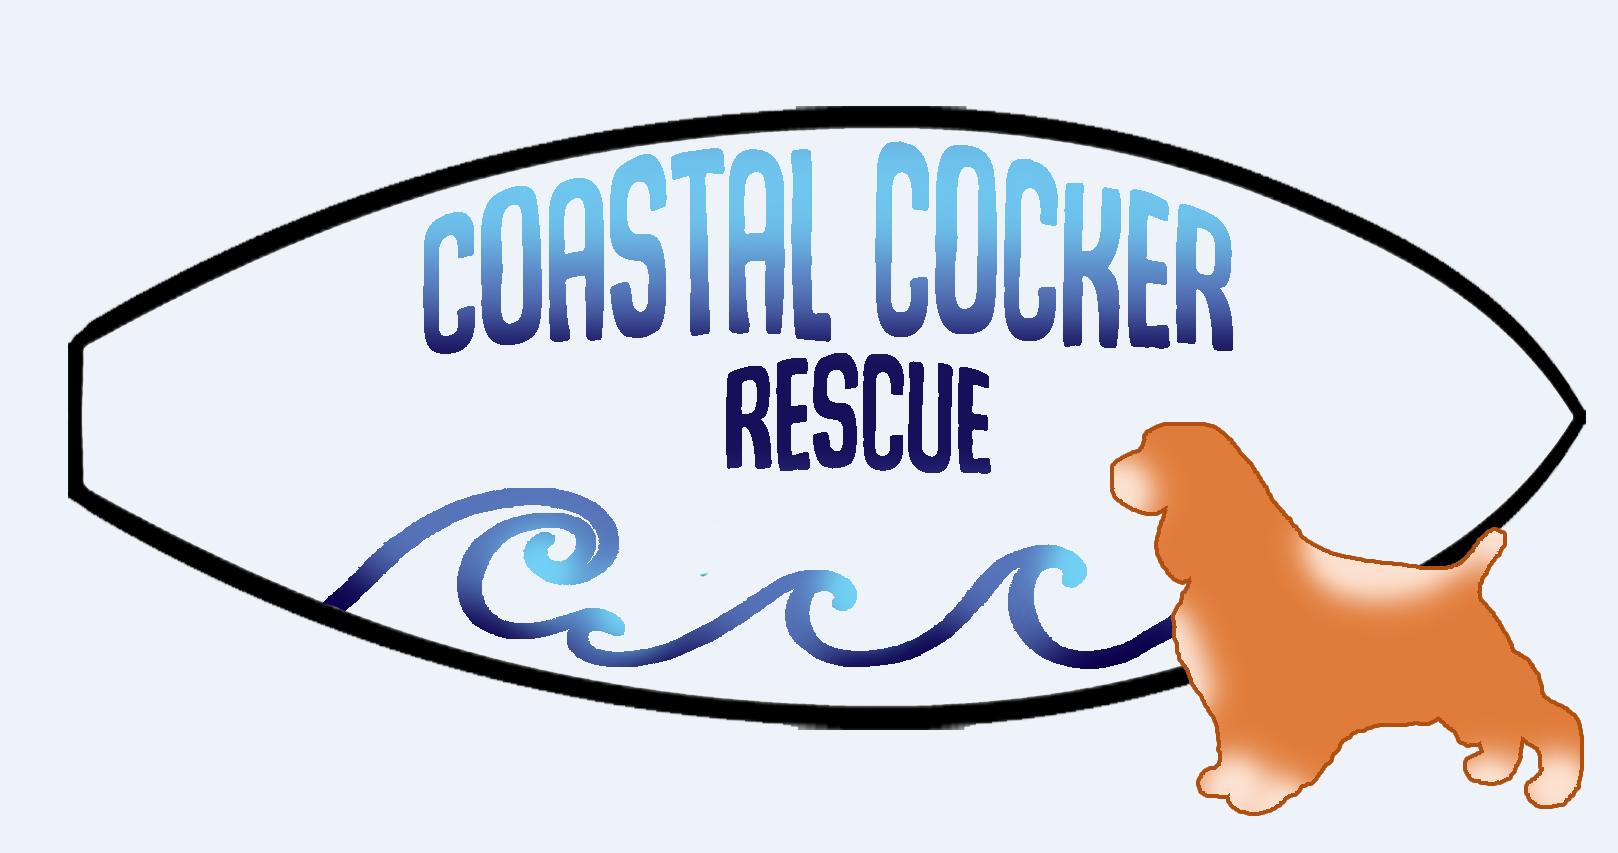 Florida Coastal Cocker Rescue